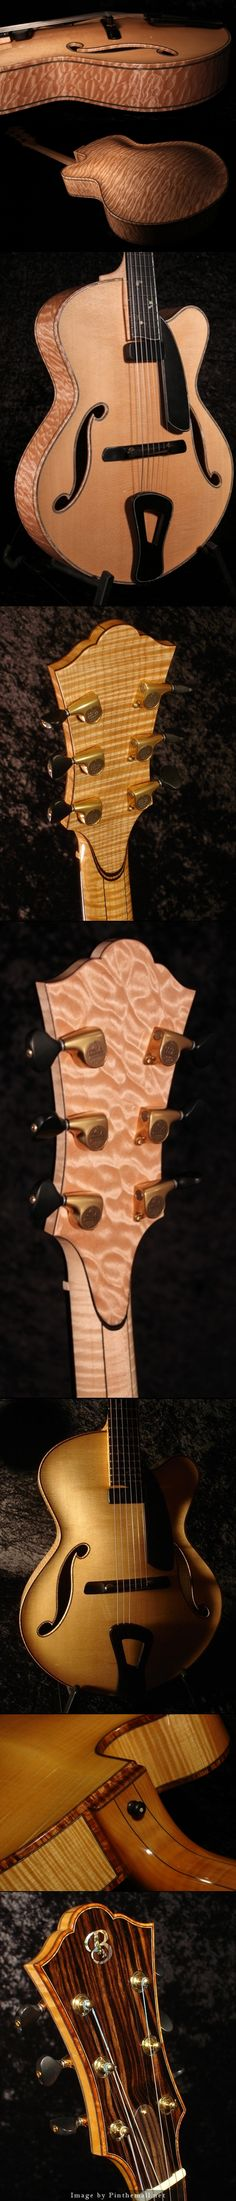 Tom Bills Custom Guitars. Beautiful design Tom!